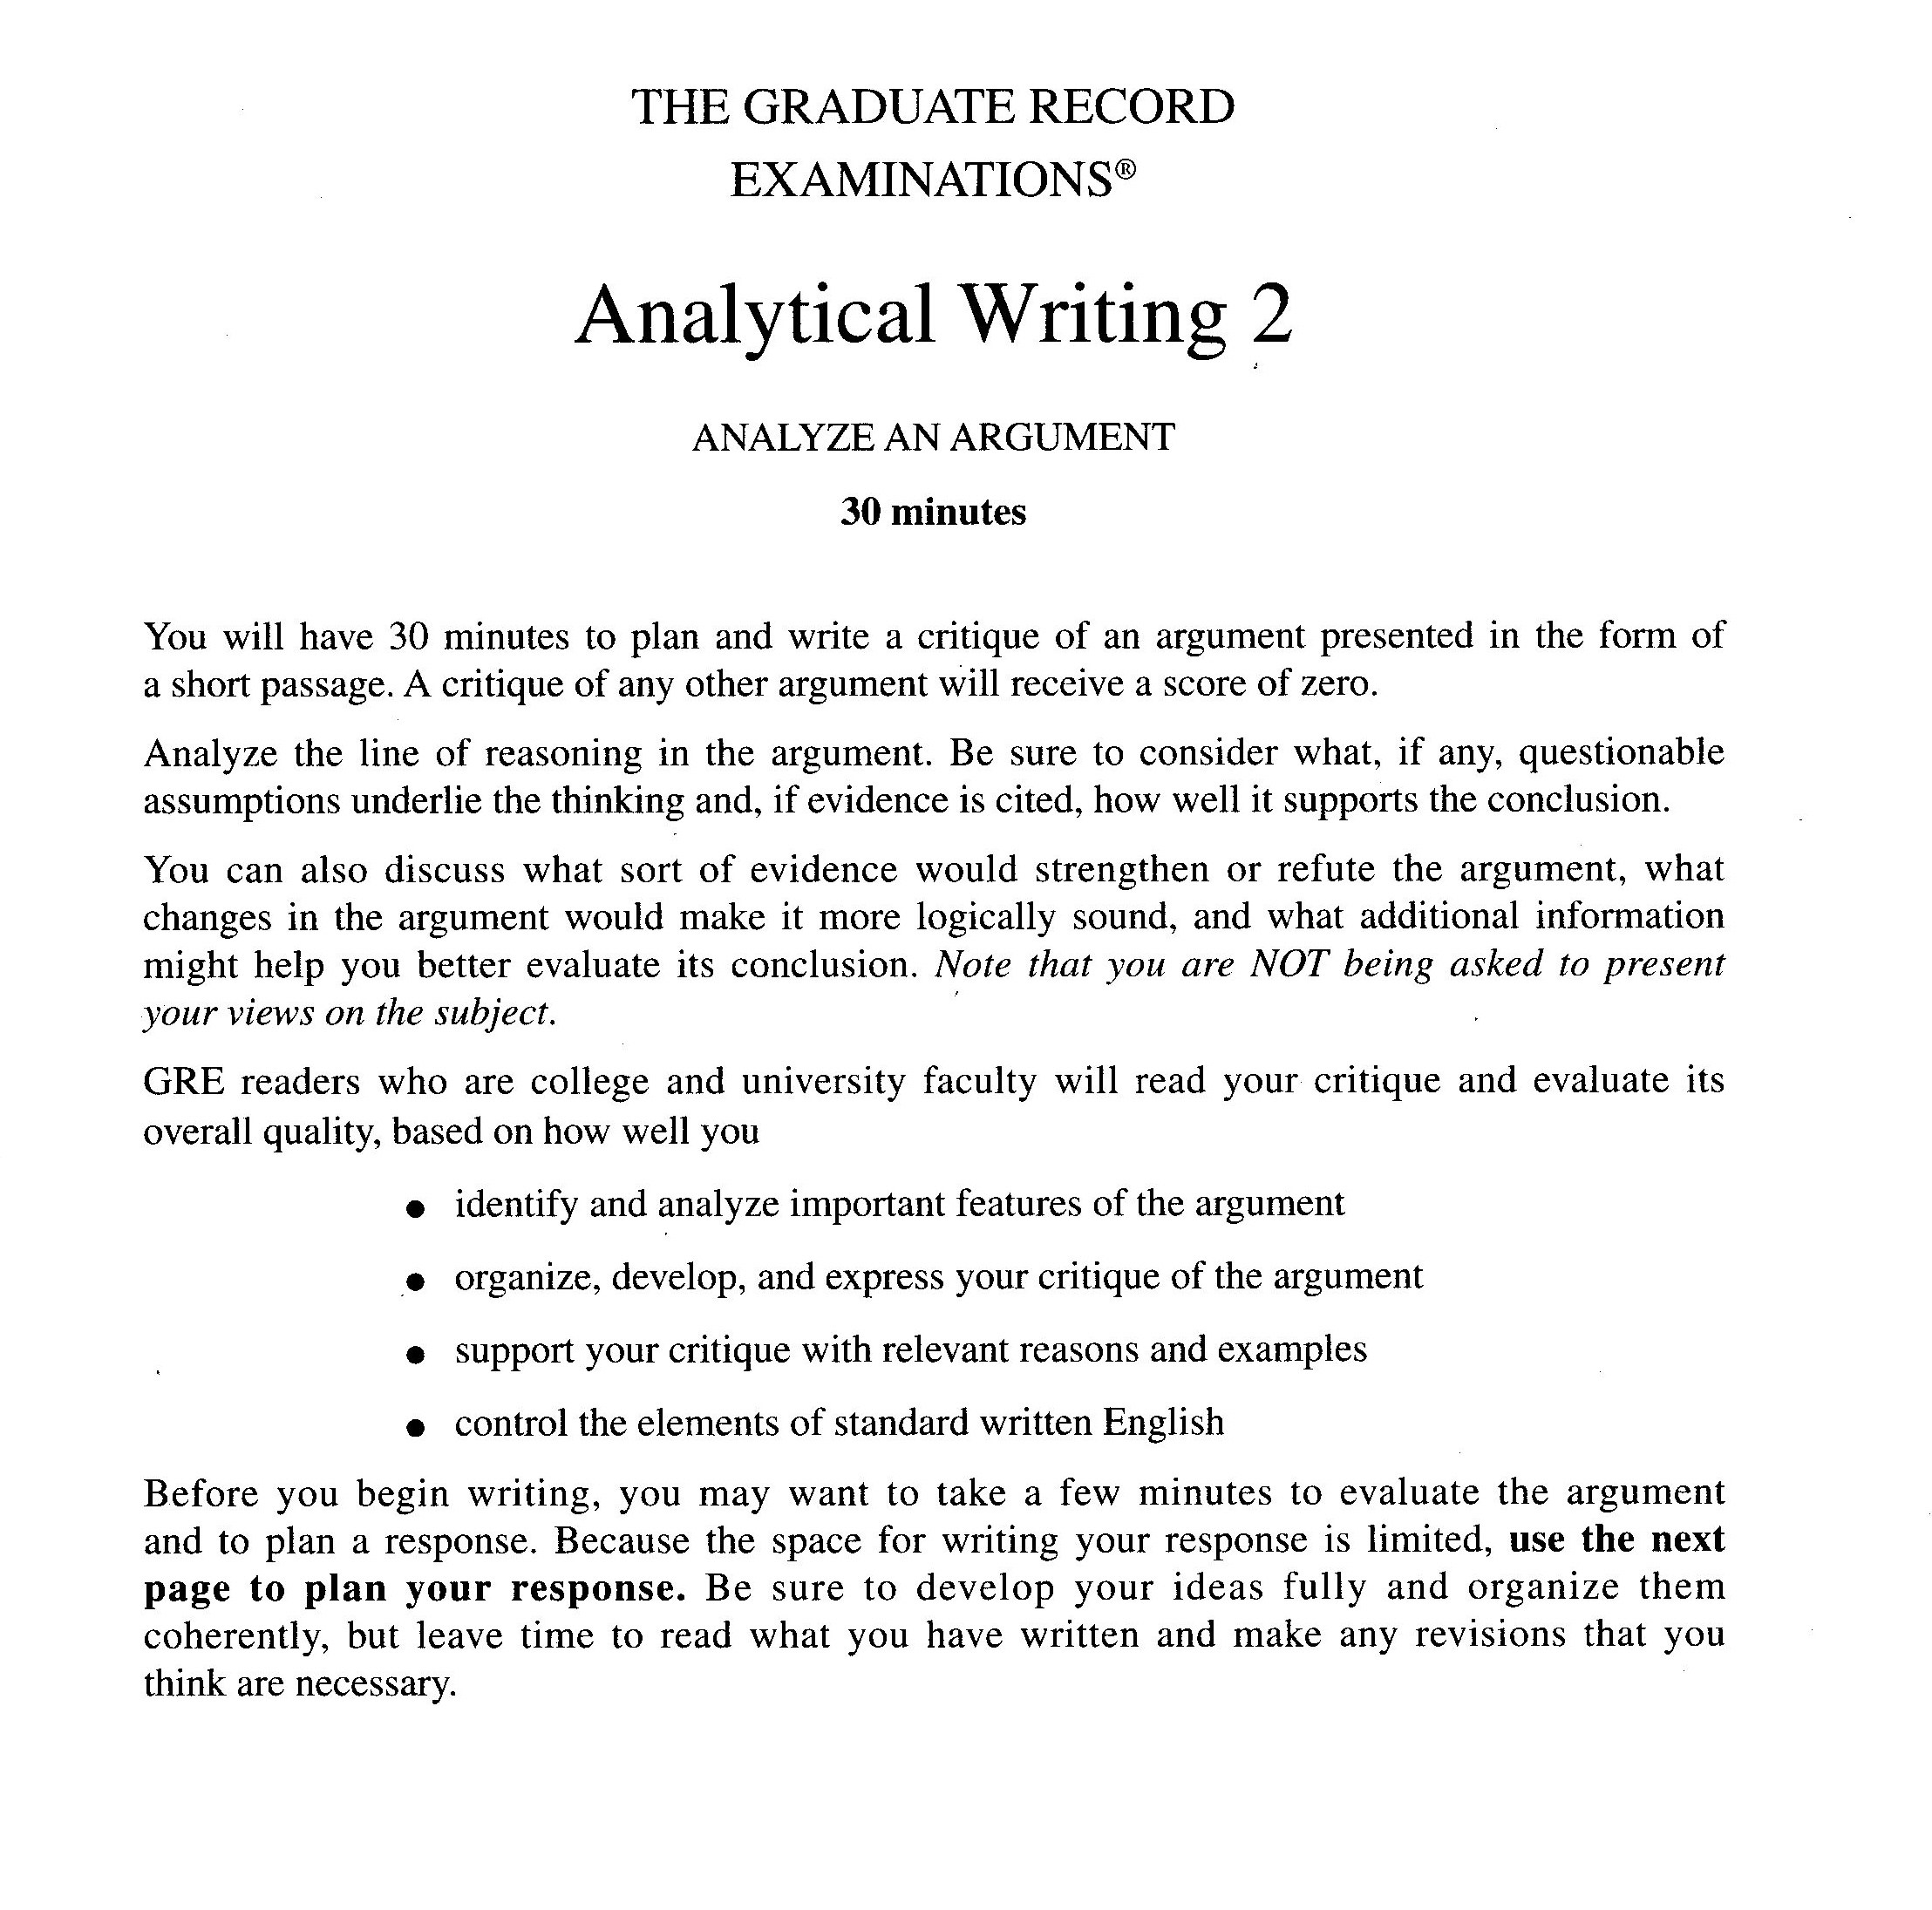 003 Essay Example Critical Analysis Sample Examples Of Essays Steps In Writing Response How To Write Introduction Workshop An Singular Rough Draft Full